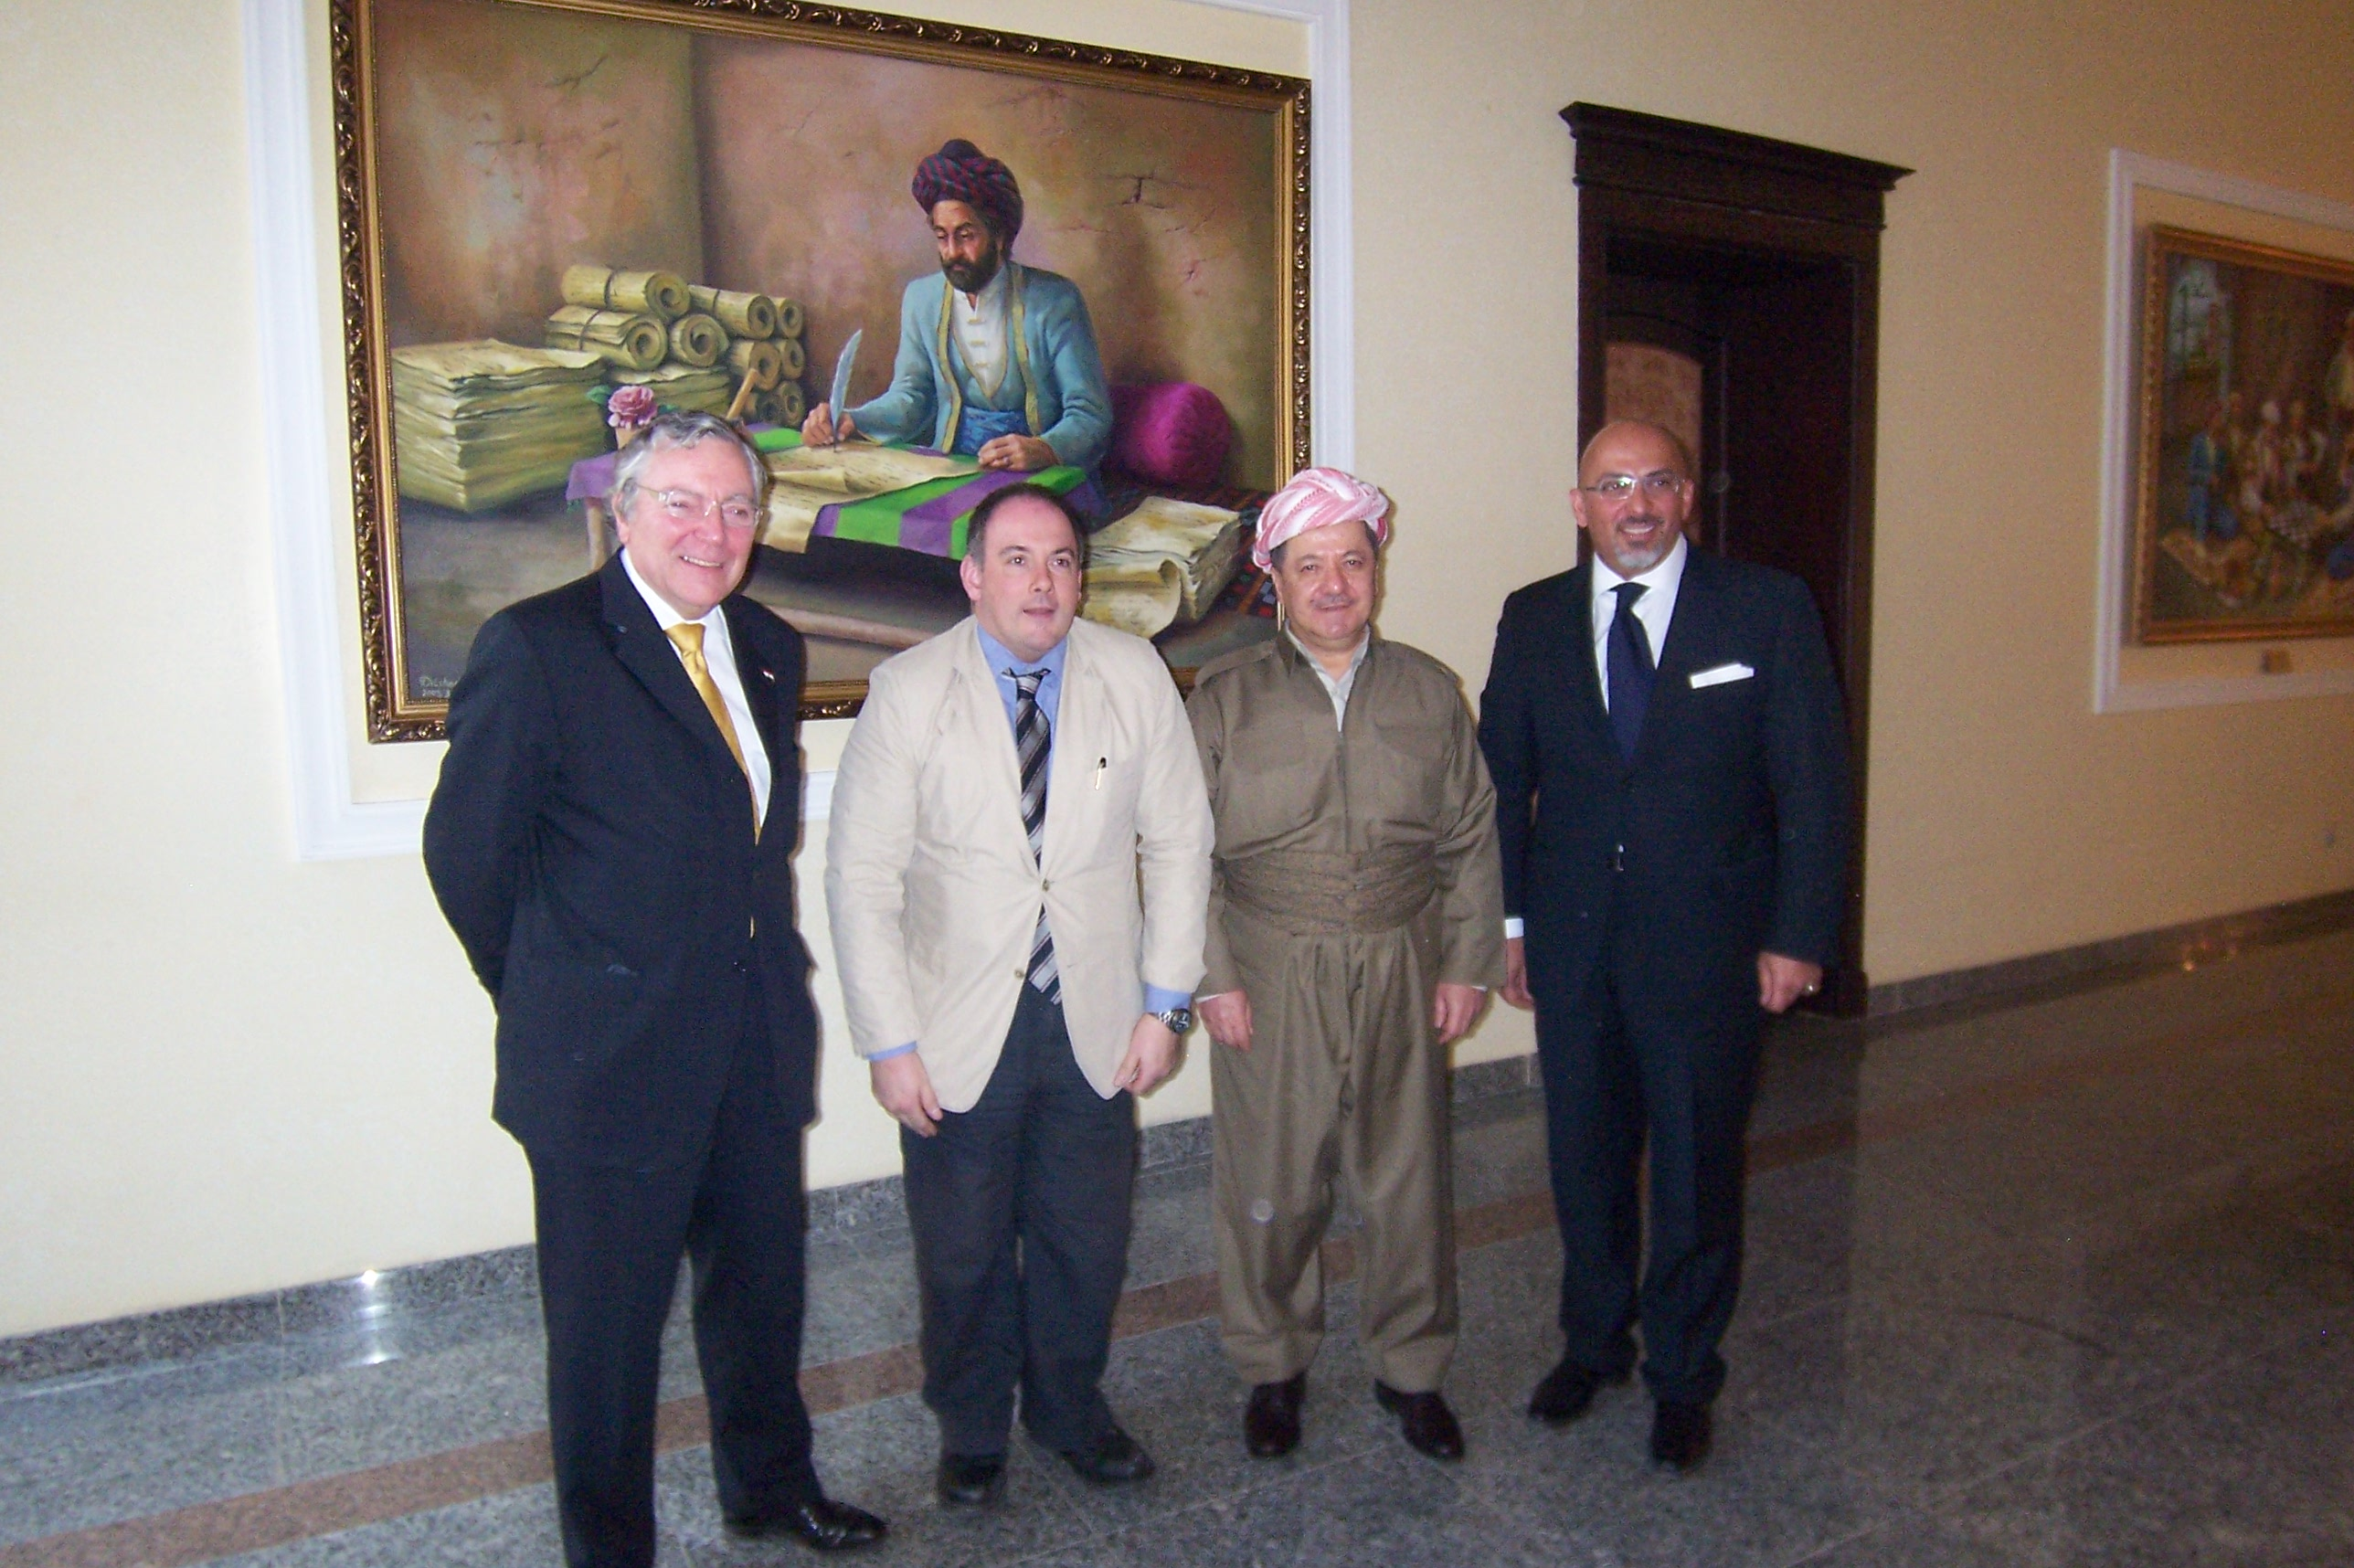 The All Party Parliamentary Group on Iraqi Kurdistan Group meets President Barzani